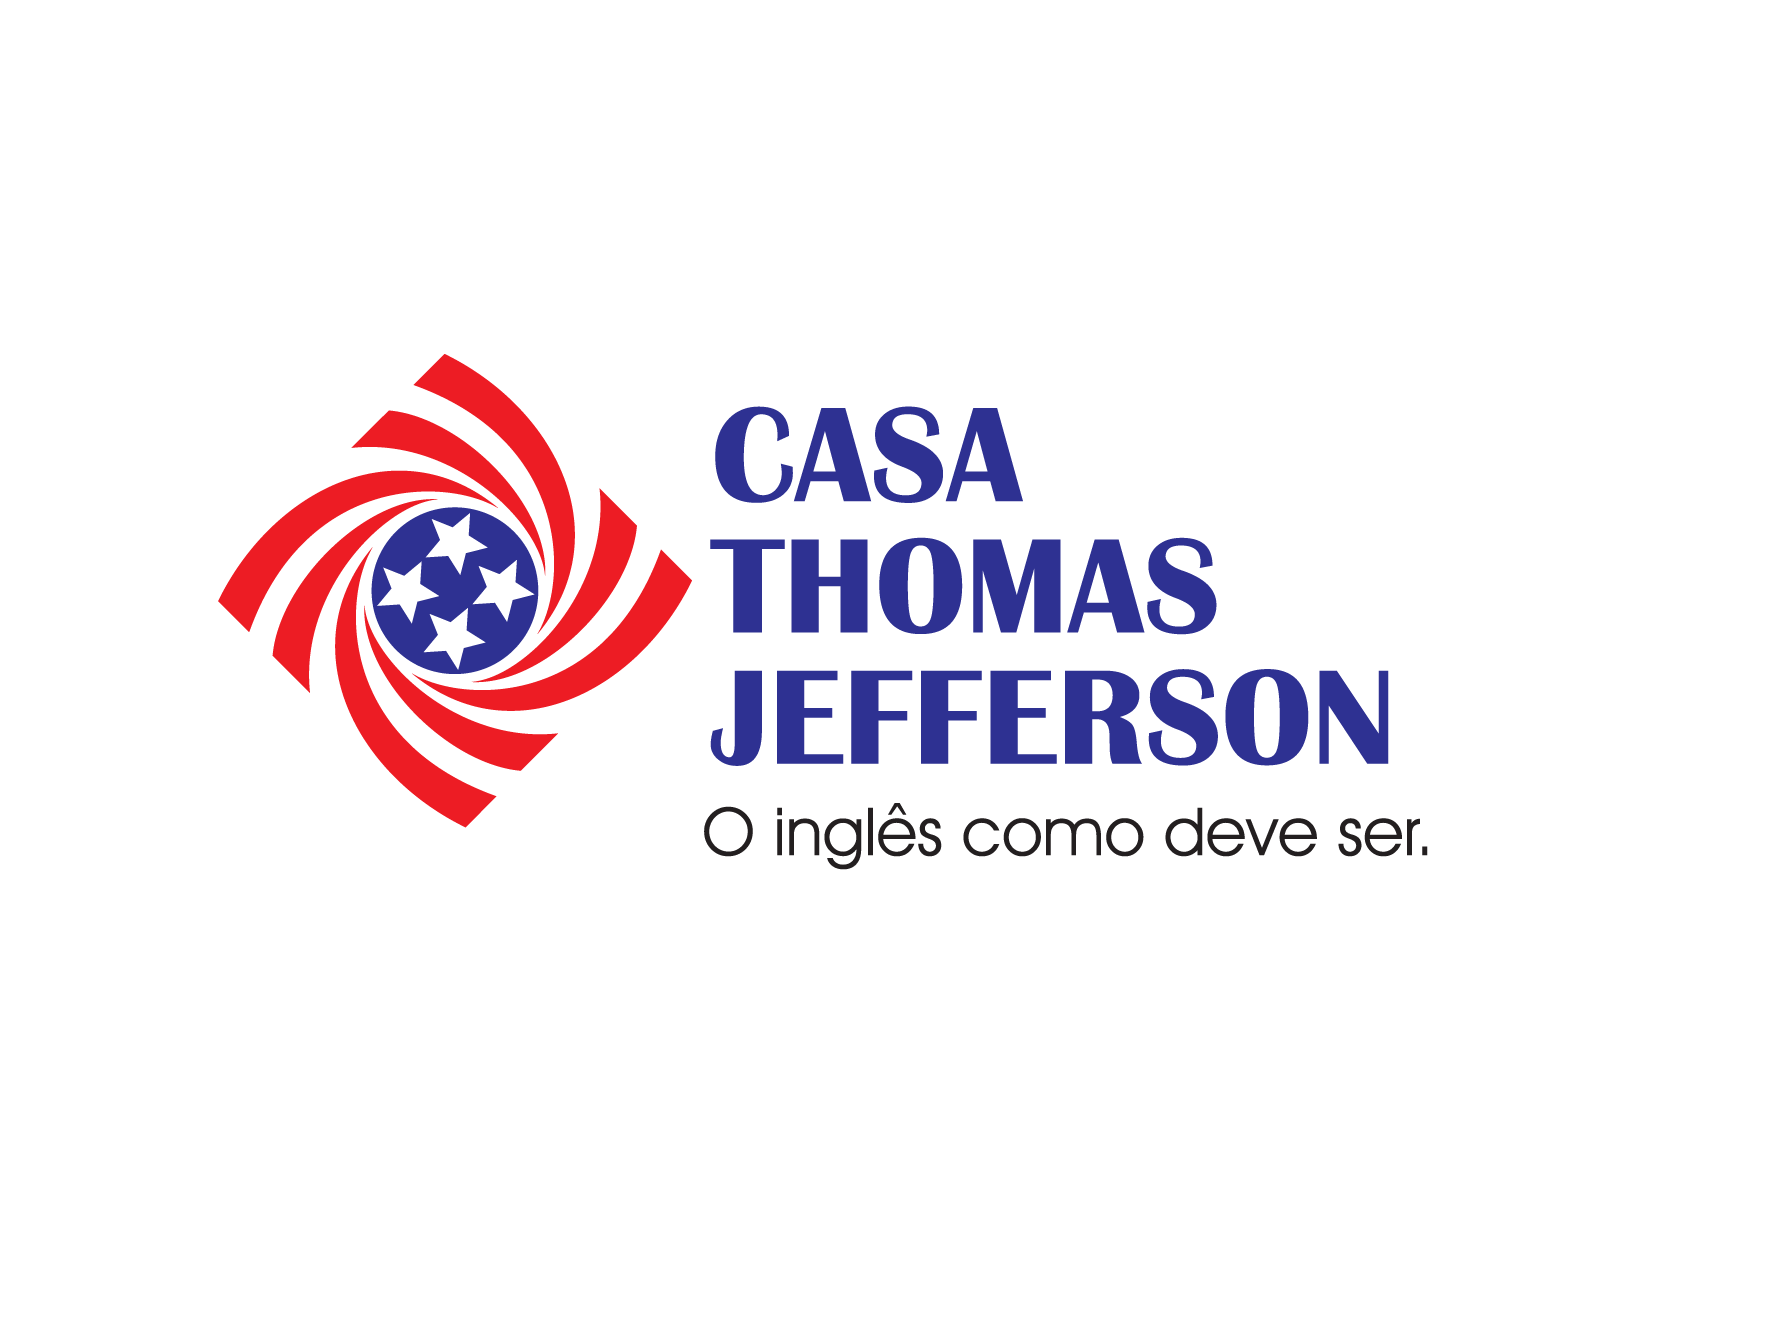 Casa Thomas Jefferson